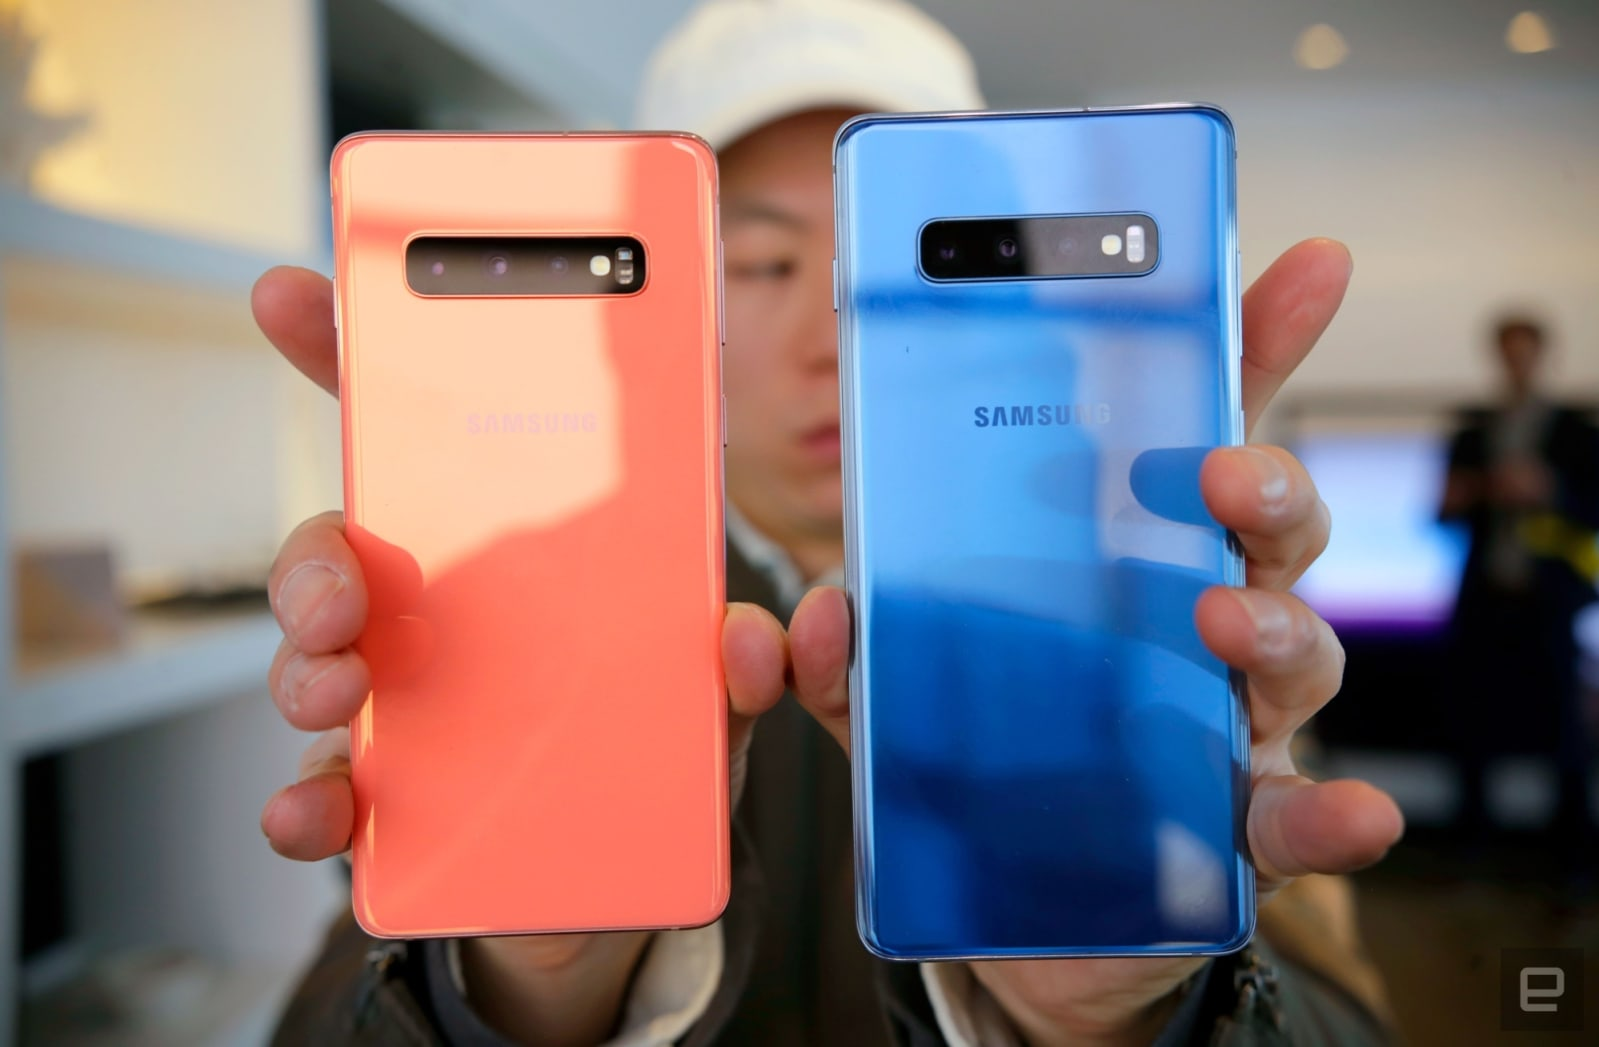 S10 and S10+